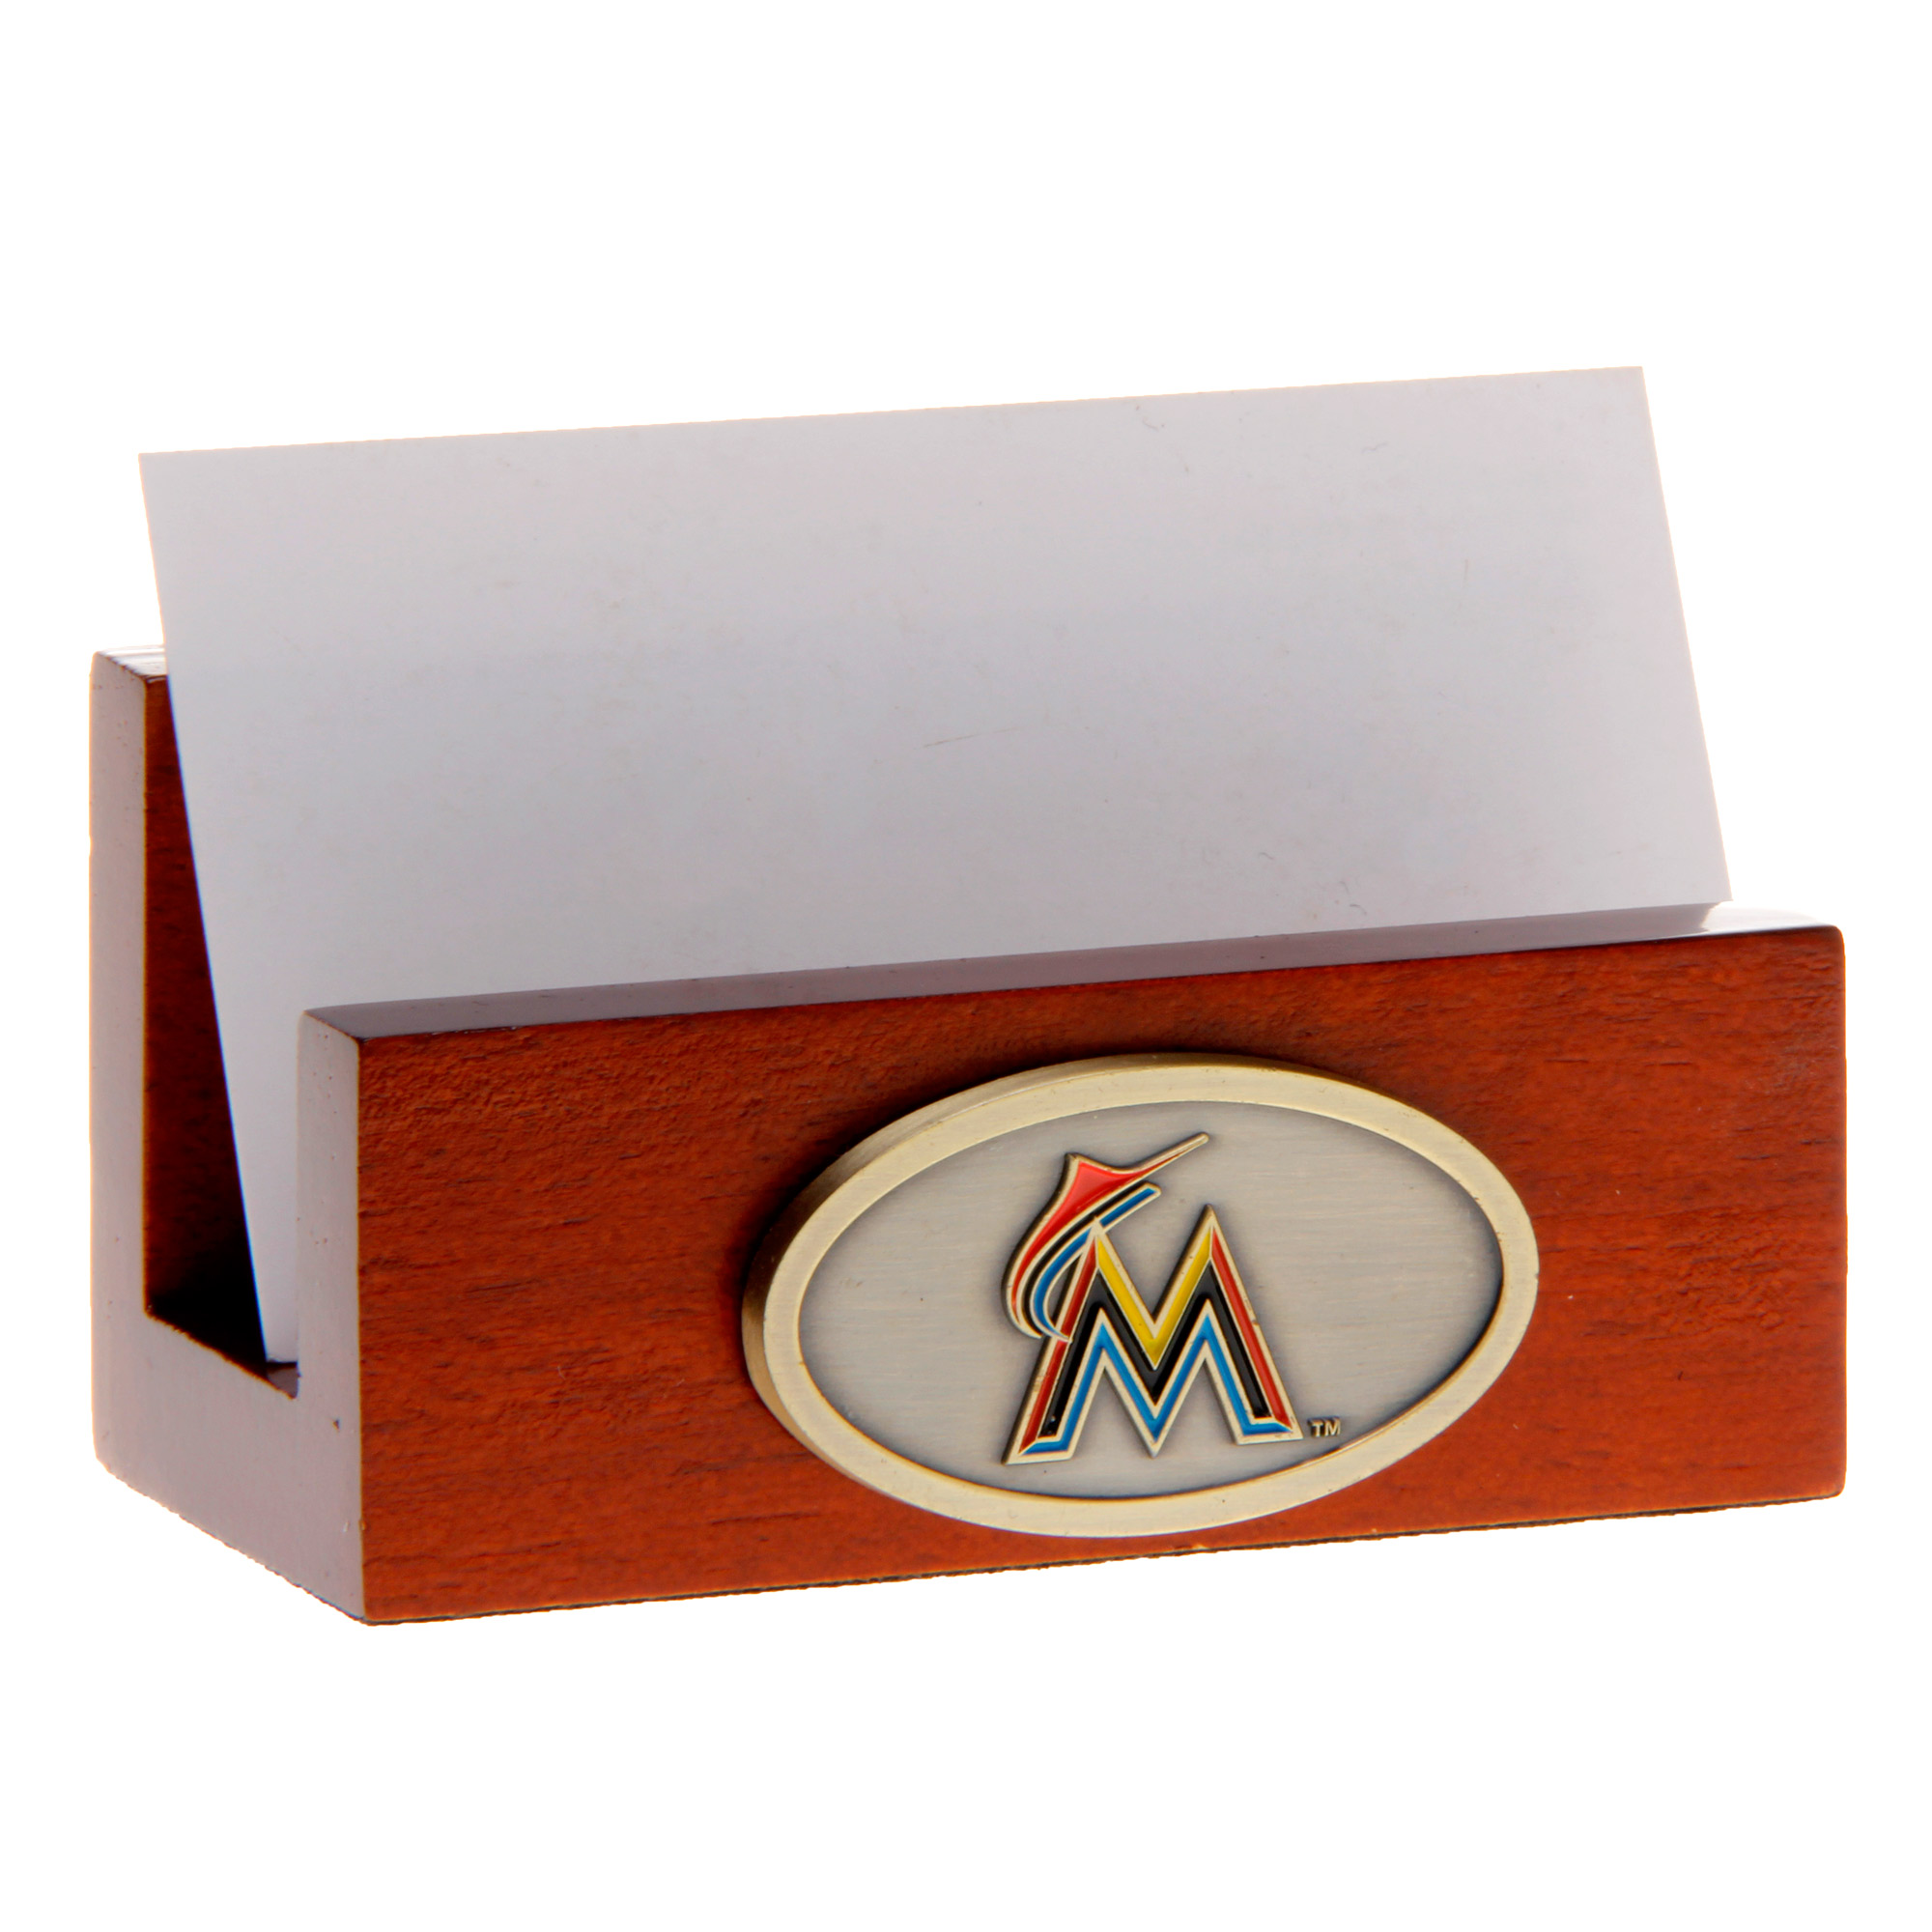 Miami Marlins Wood Team Business Card Holder - No Size